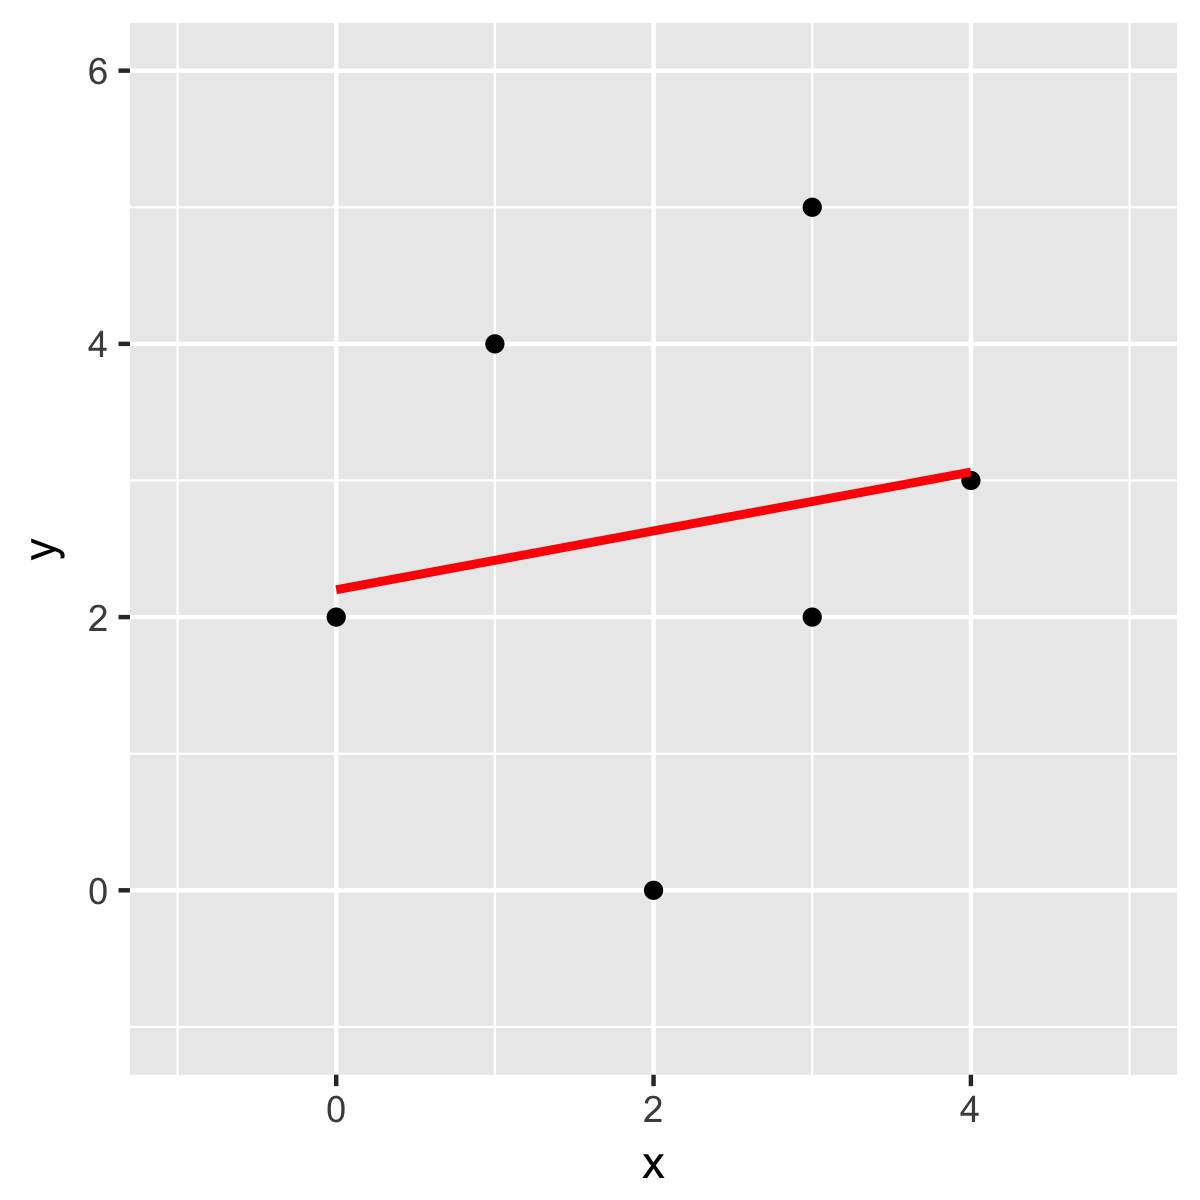 Fitting a line with another method (in R)